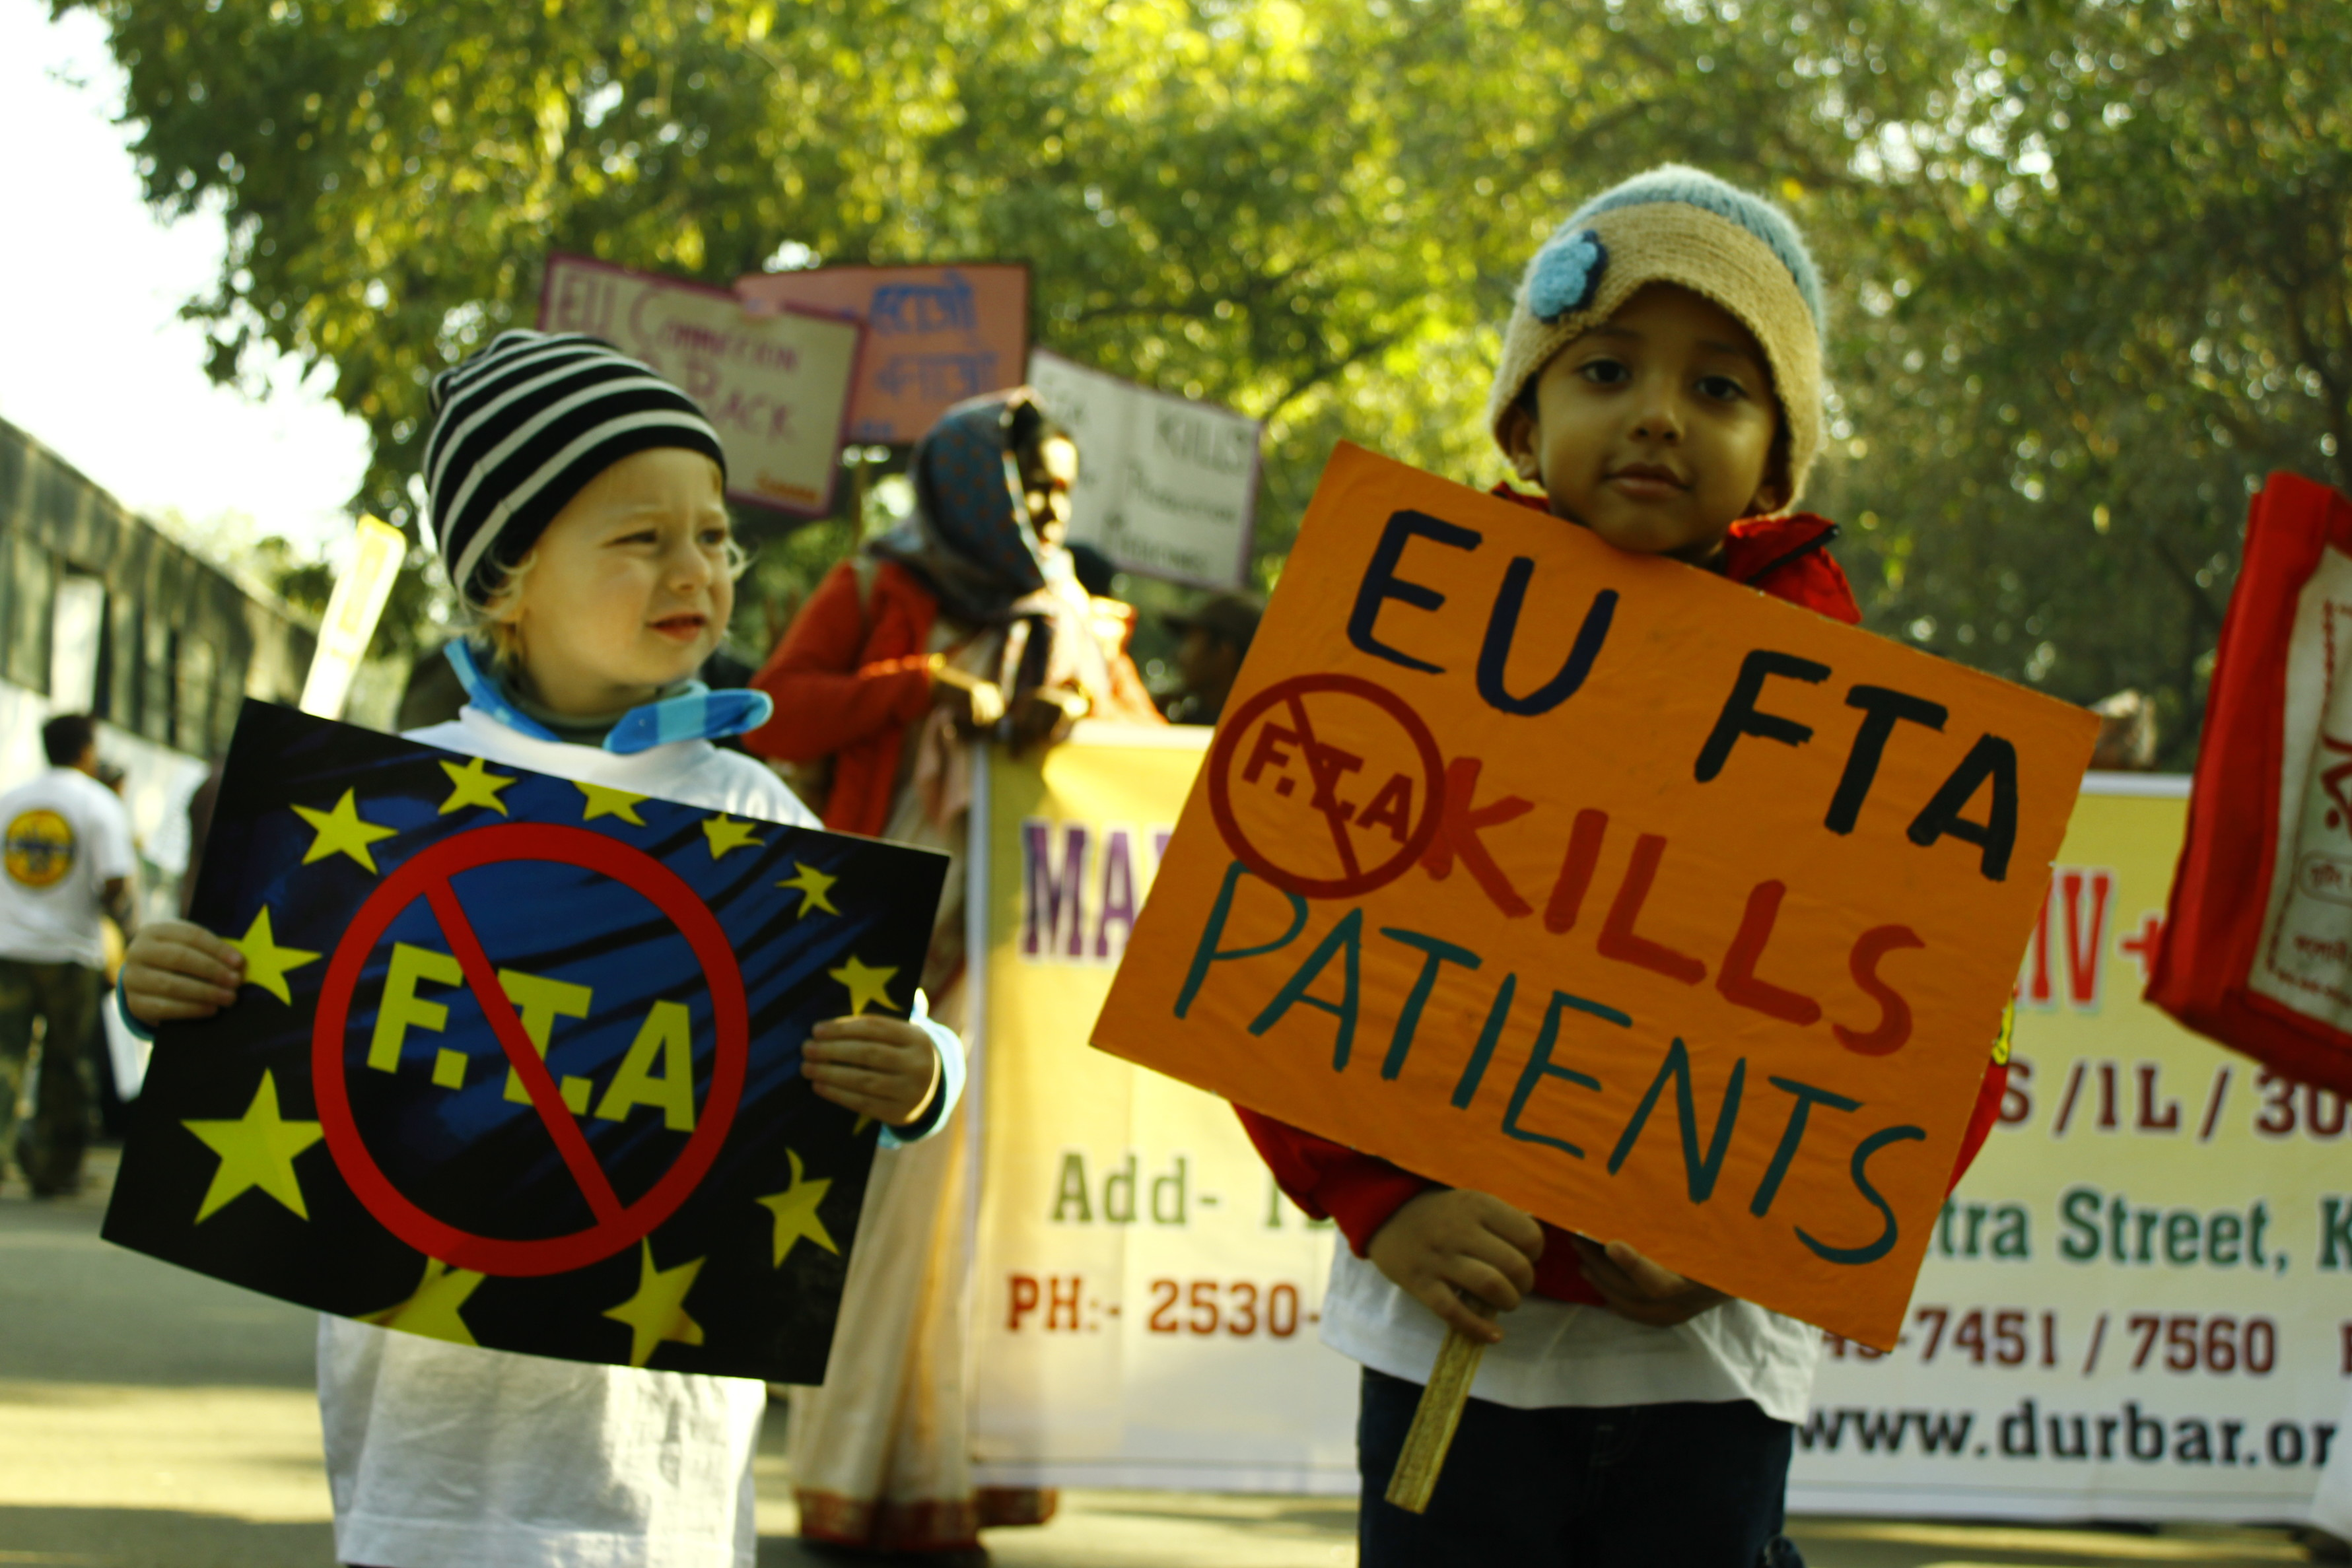 Msf Response On The India Efta Free Trade Agreement Negotiations In